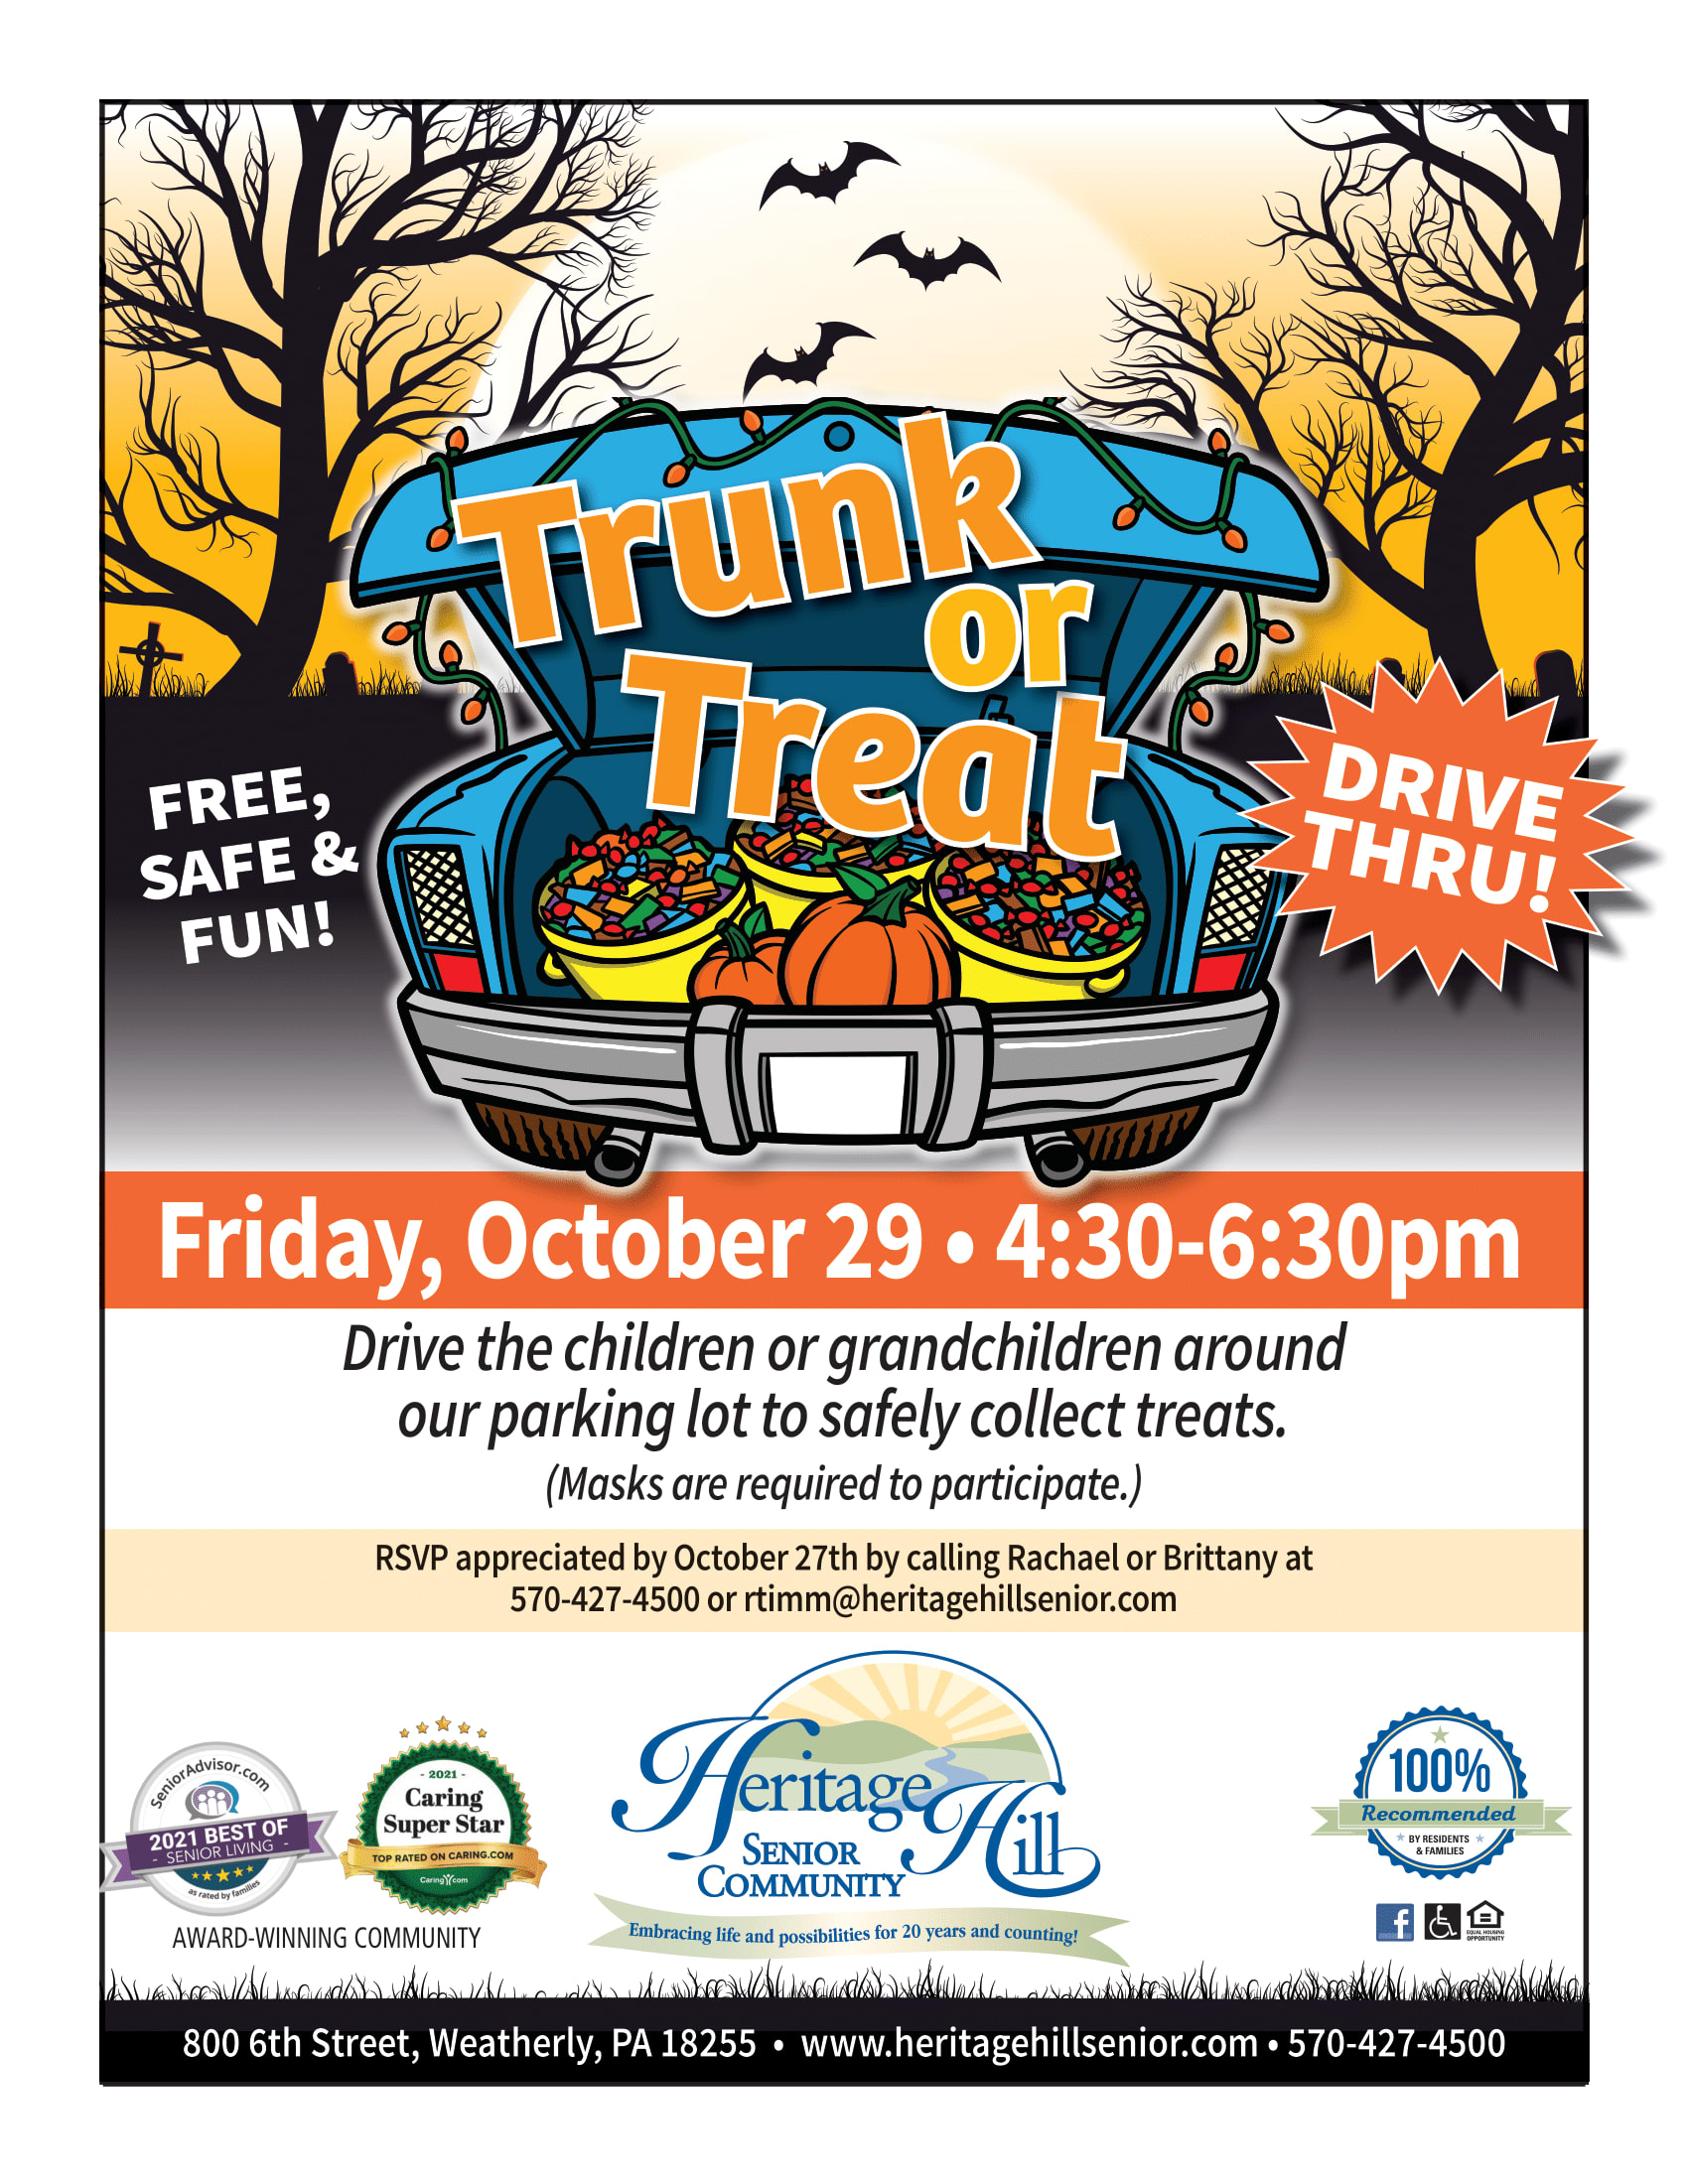 Trunk or treat flyer for Heritage Hill Senior Community